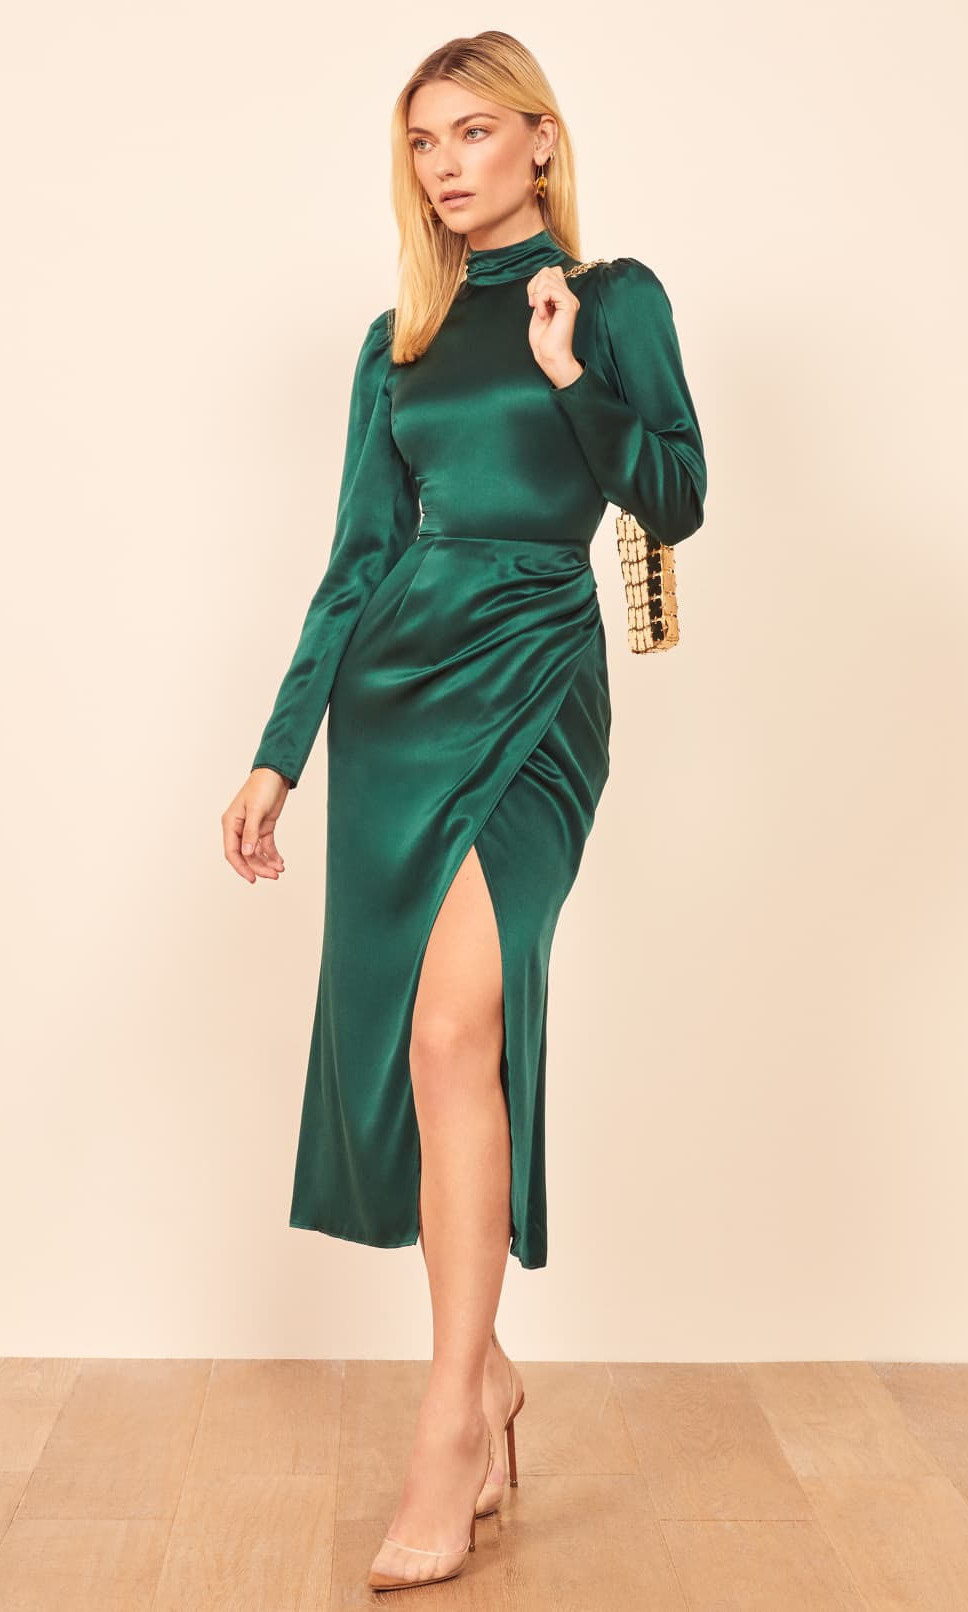 "<p>The high neckline of this silky style is juxtaposed with a midi skirt with leg-revealing slit. The beautiful dress also has a surprise keyhole cutout on the back!<p>Reformation Carmelina dress, $460, <a href=""https://www.thereformation.com/products/carmelina-dress?color=Emerald&via=Z2lkOi8vcmVmb3JtYXRpb24td2VibGluYy9Xb3JrYXJlYTo6Q2F0YWxvZzo6Q2F0ZWdvcnkvNWE2YWRmZDJmOTJlYTExNmNmMDRlOWM2"">Reformation</a</p><p><a href=""https://www.zara.com/ca/en/textured-dress-with-belt-p01165642.html?v1=30360143&v2=1281625"" target=""_blank""></a><a href=""https://www2.hm.com/en_ca/productpage.0803990001.html"" target=""_blank""></a>Screenshot via Reformation"